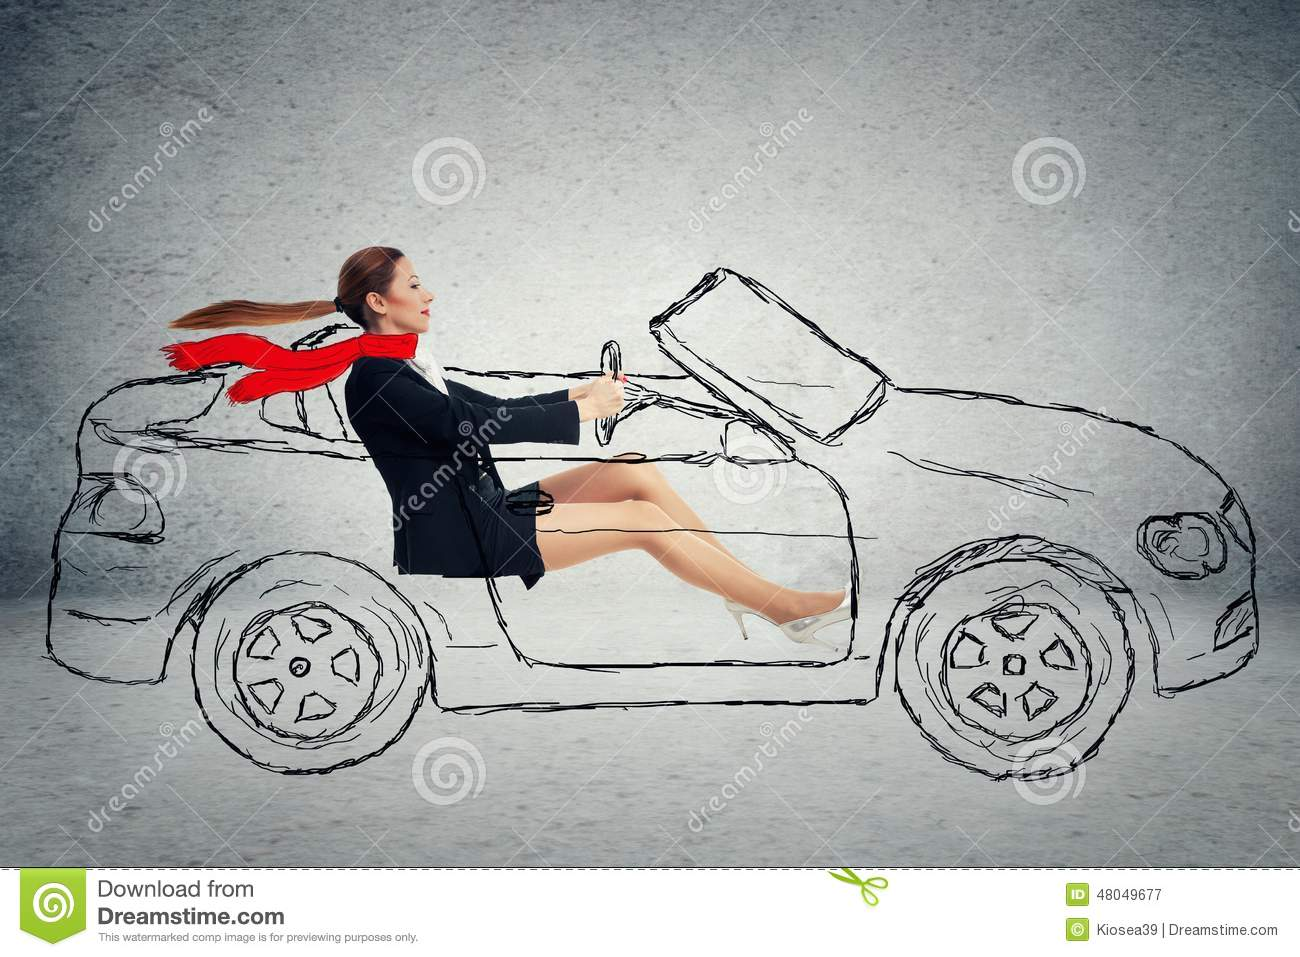 Car Sketch Stock Photos - Royalty Free Stock Images